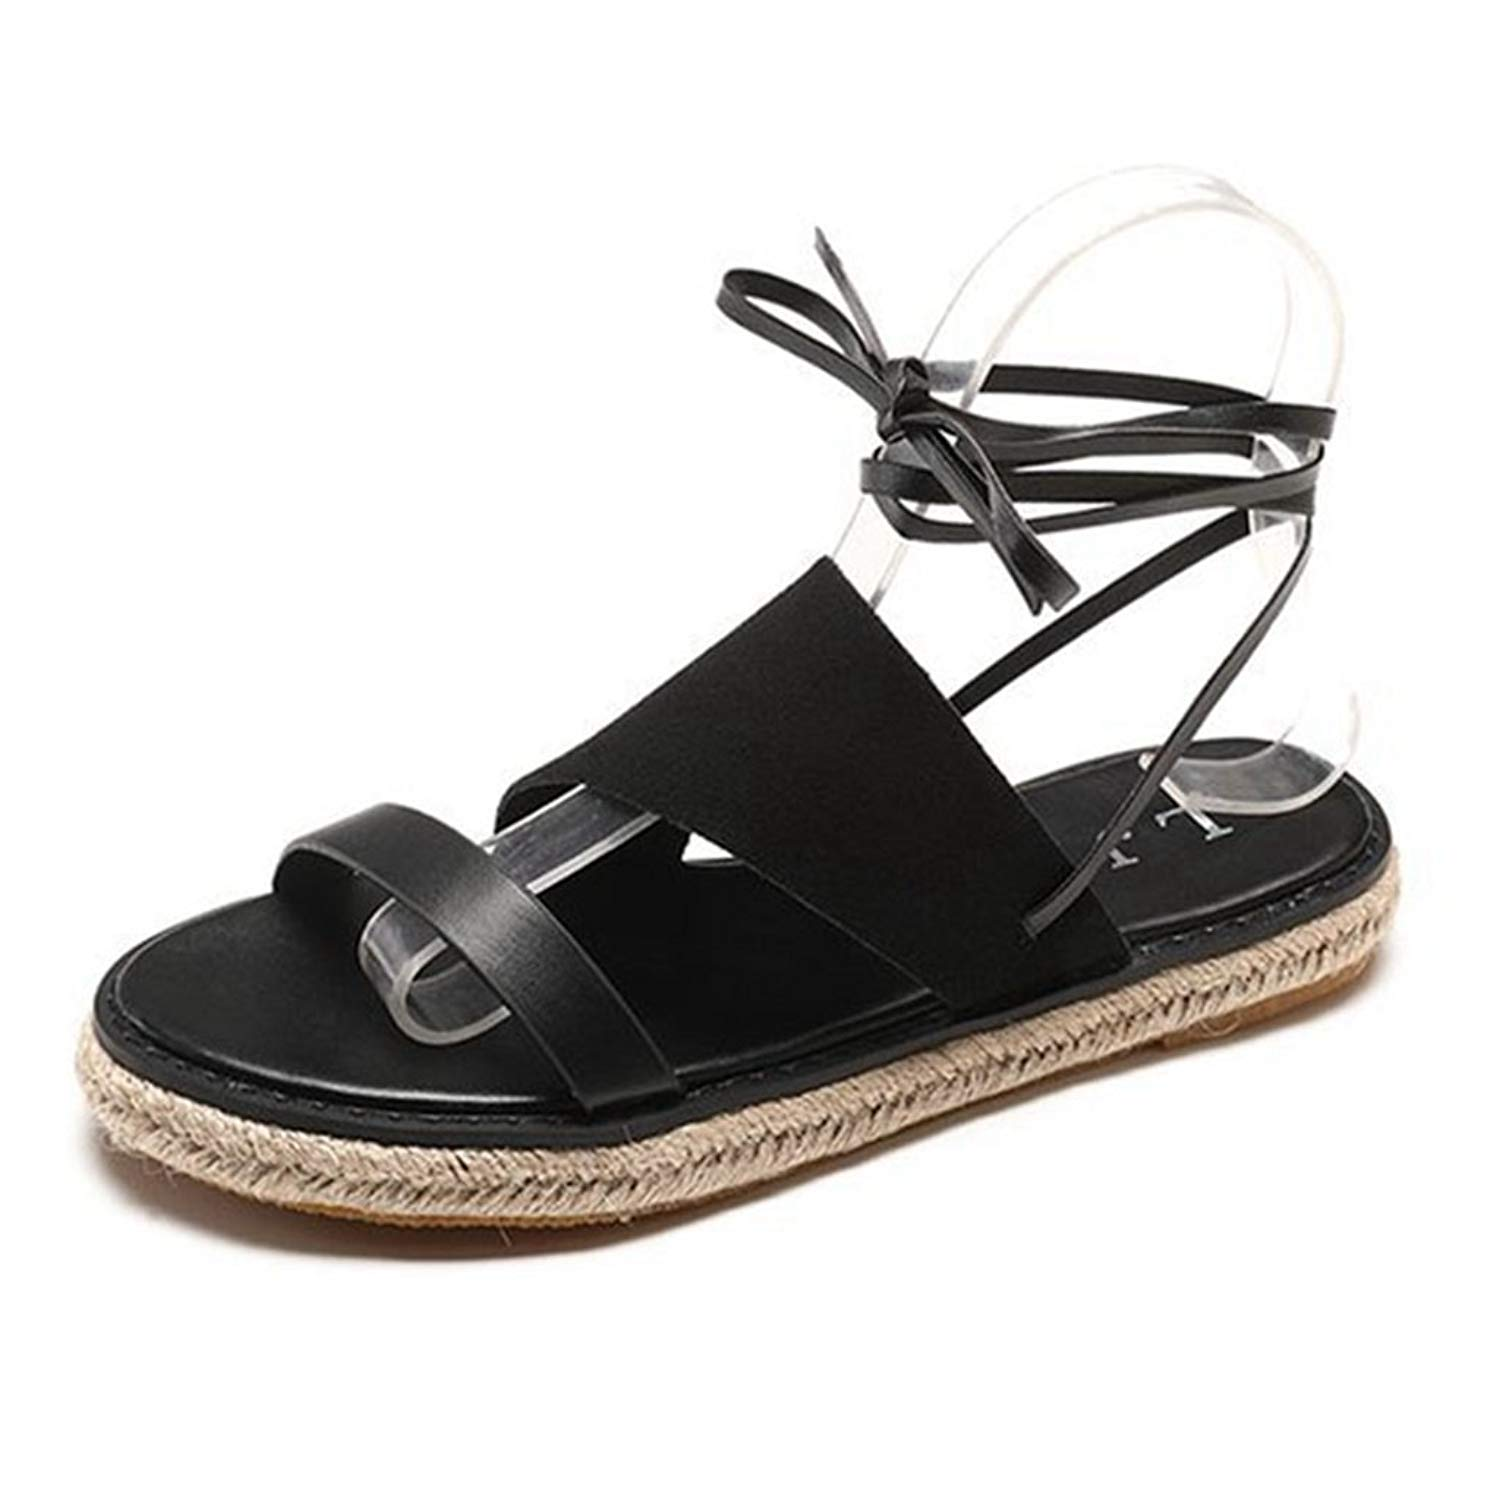 GIY Womens Platform Sandal Summer Open Toe Lace up Thick Bottom Outdoor Walking Ladies Flat Sandals